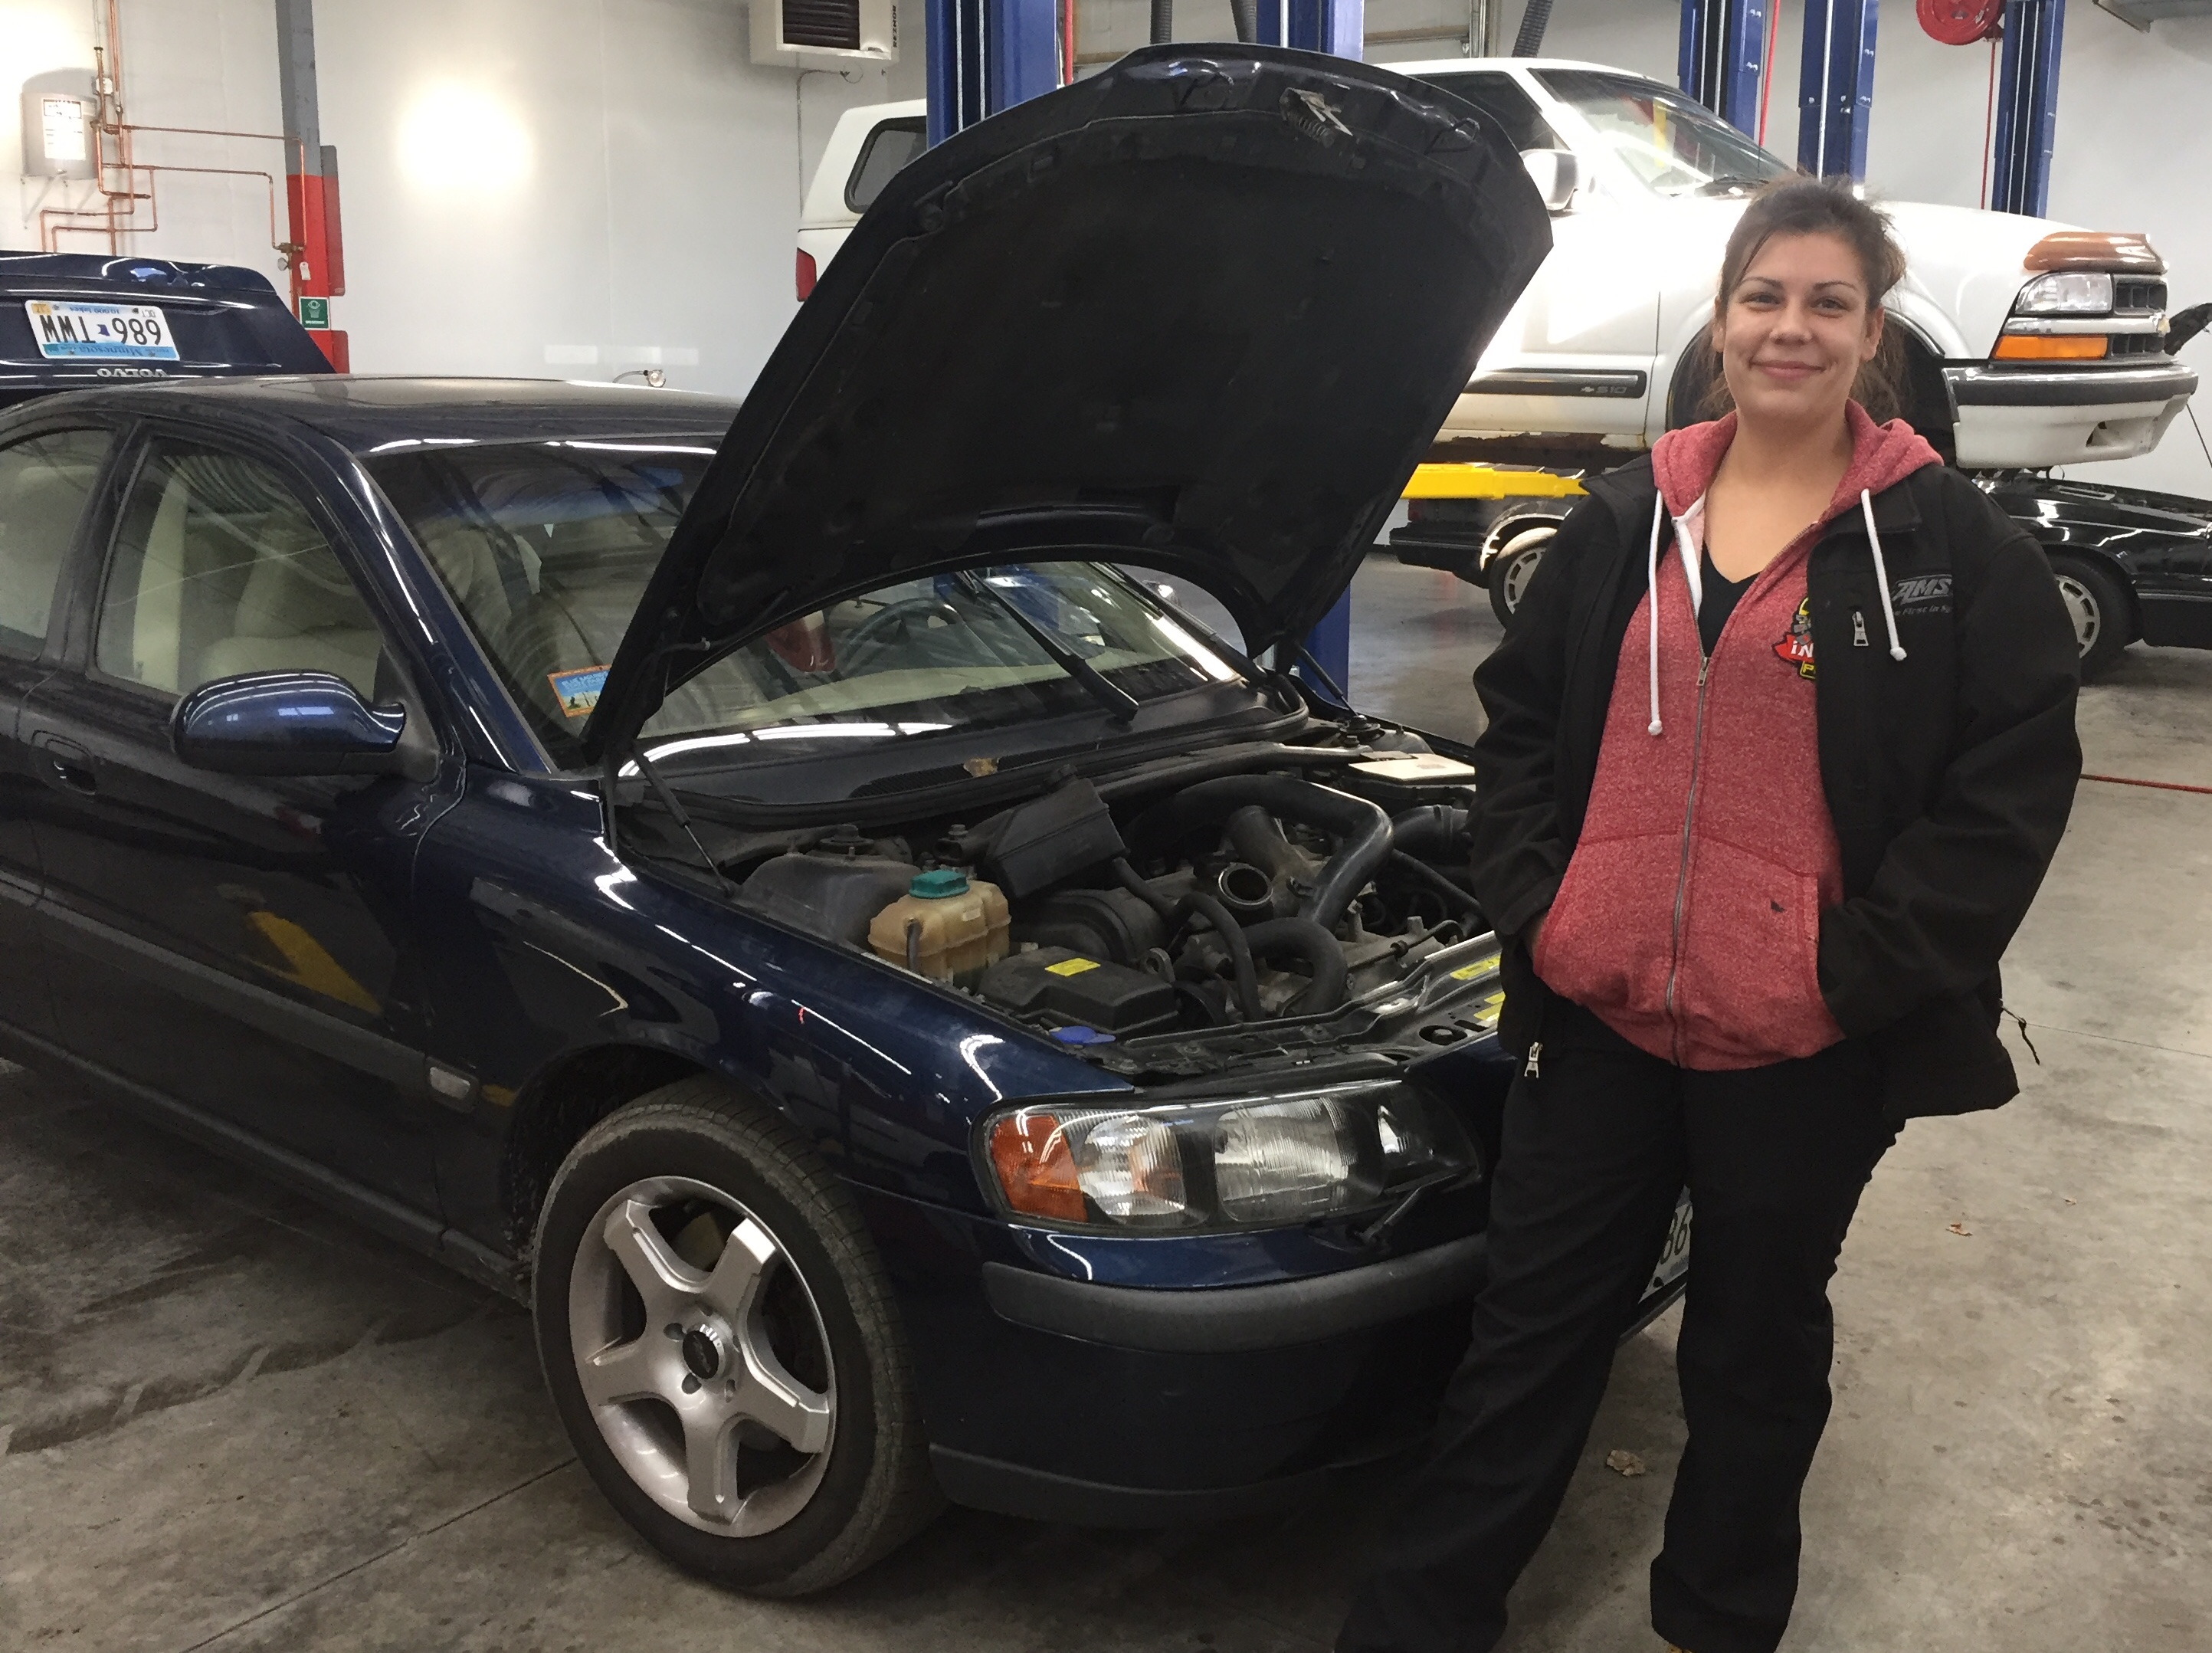 Shawna with her latest car project